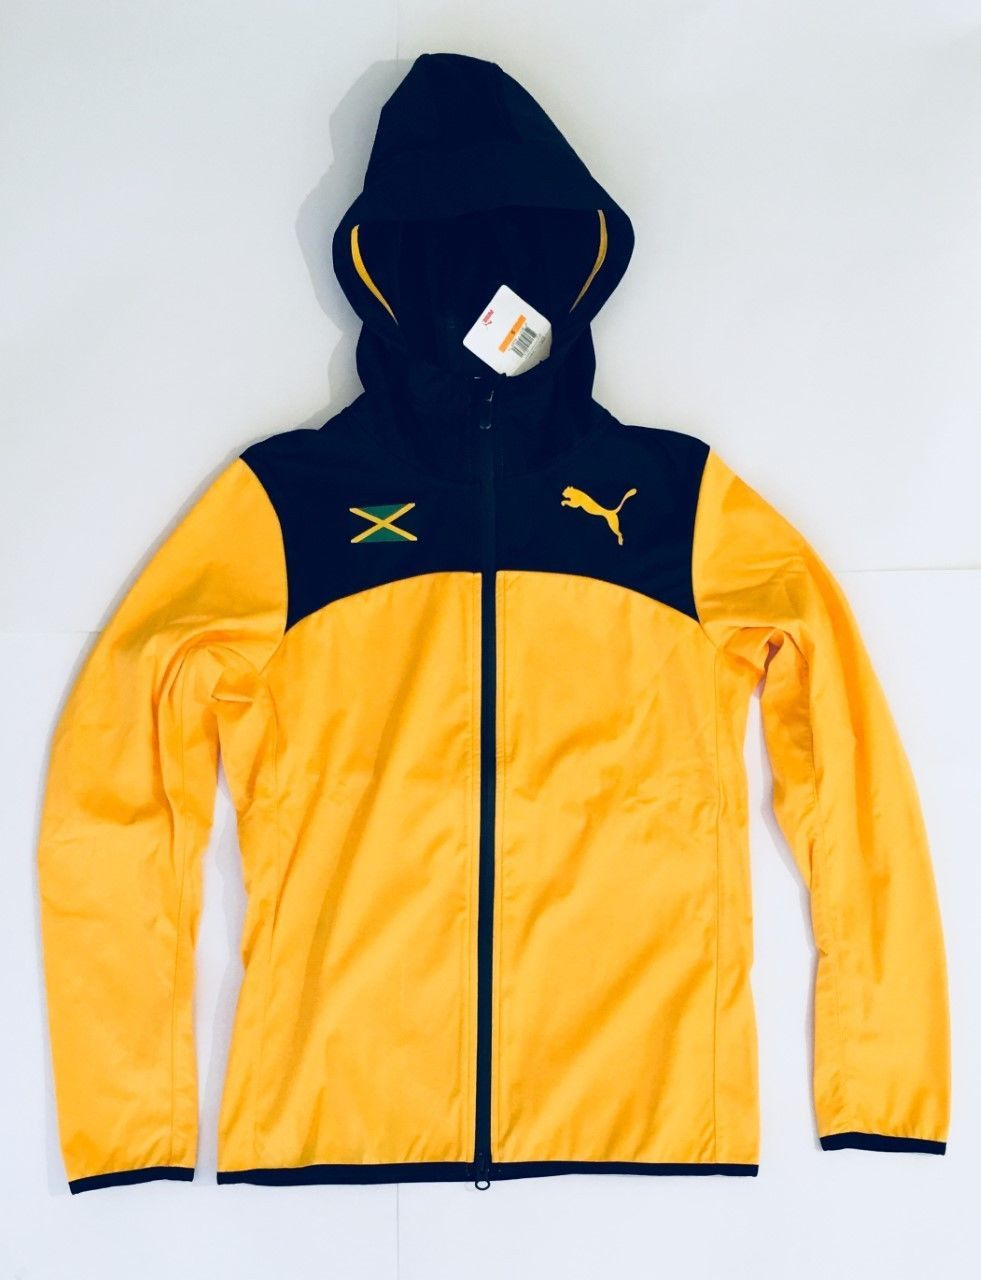 Puma Womens Jamaica 2017 Athlete Warm Up Hooded Jacket Spectra Yellow Xs S M Clothes For Women Clothes Jackets